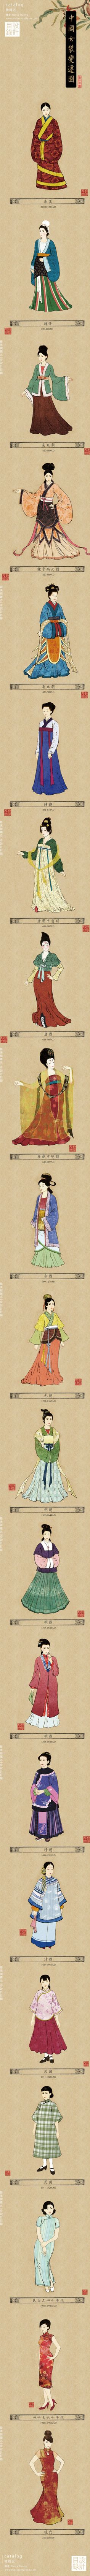 a larger version of the Chinese costume history illustrations  - like the last, these aren't Japanese, but might still be useable for inspiration with some of the design lines.